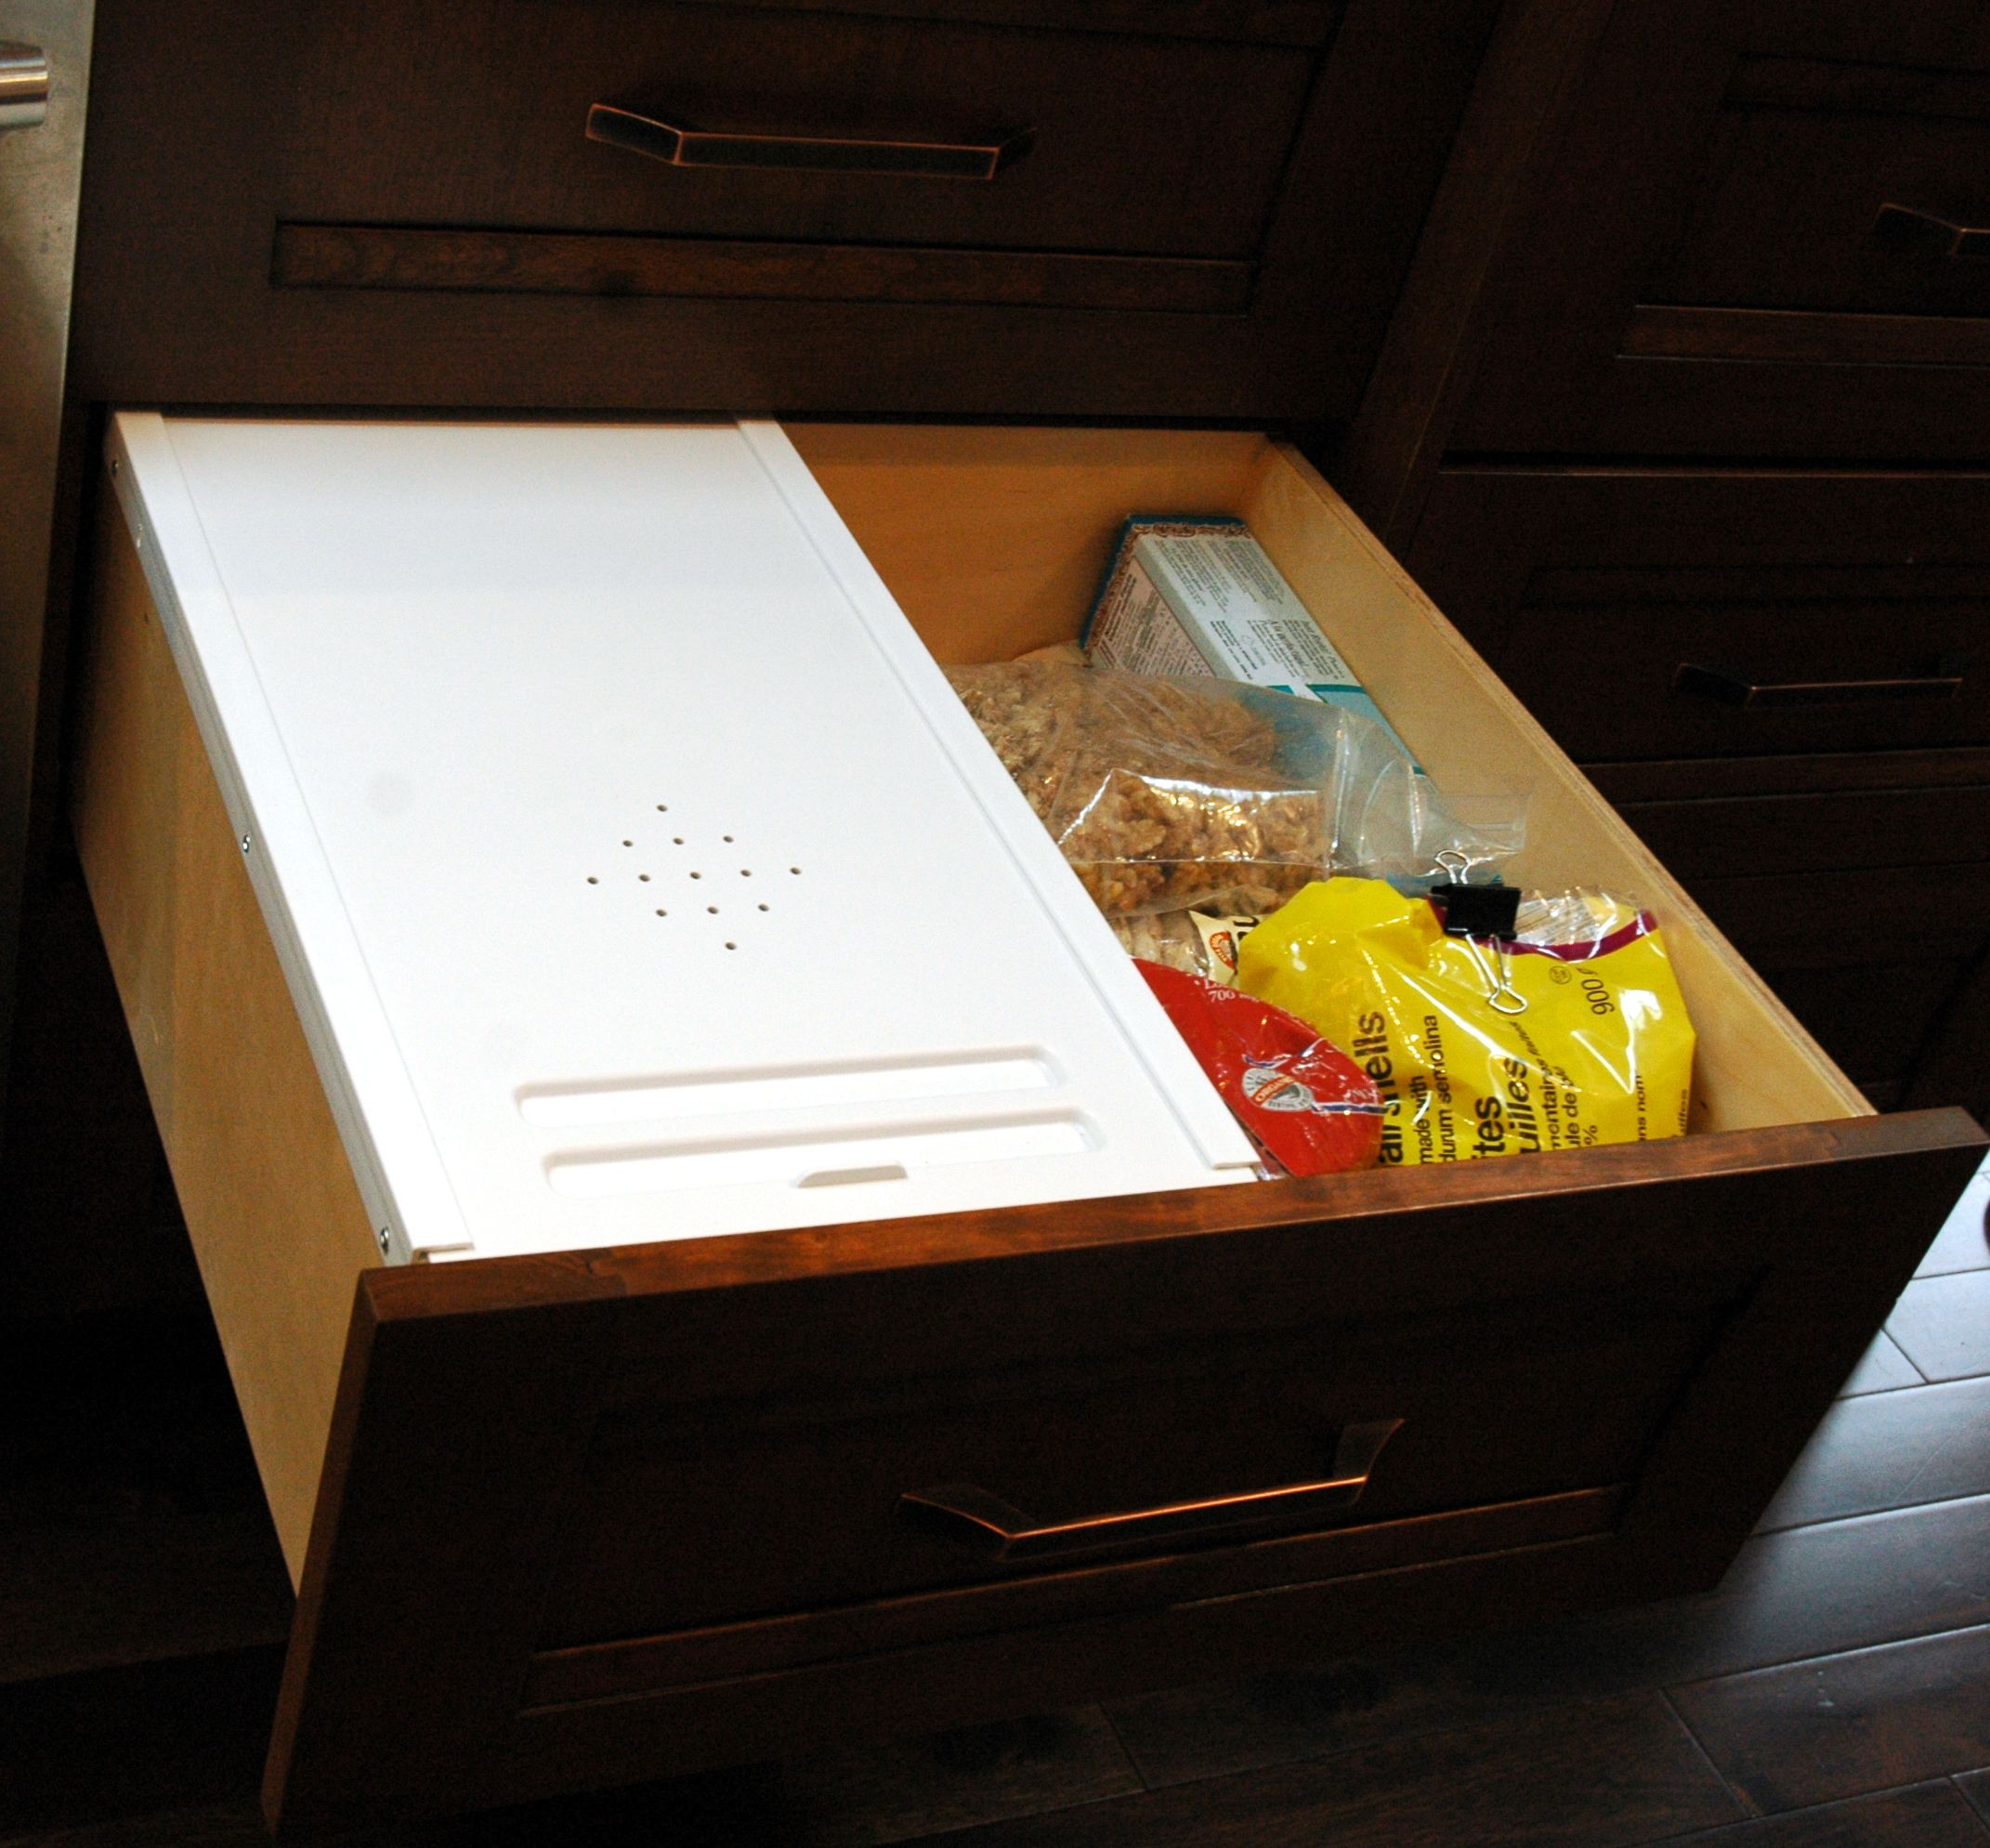 Built In Bread Box In A 24 Drawer By Www One21design Com Home Improvement Projects Home Improvement Kitchen Design